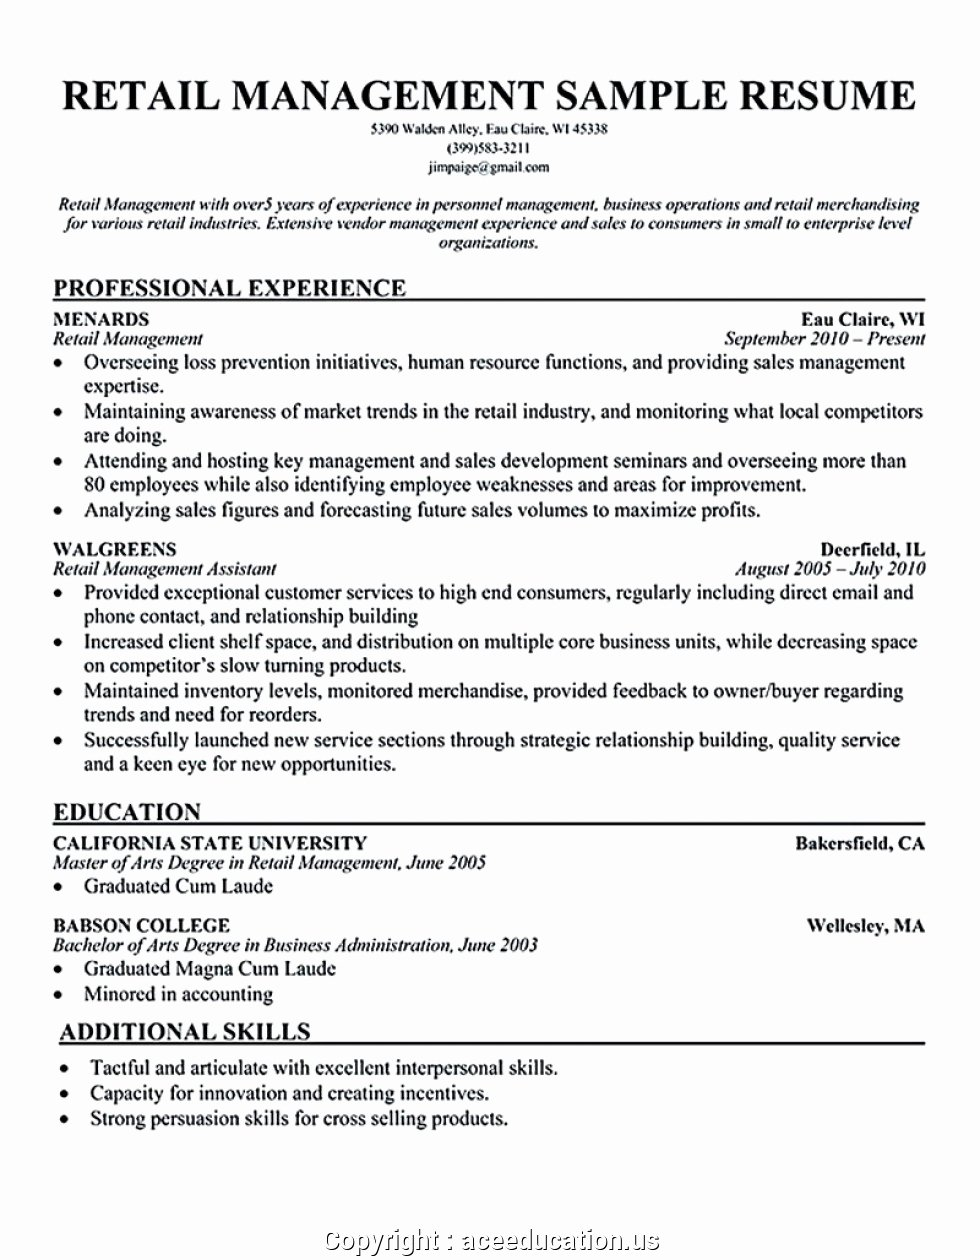 Sample Store Manager Resume Inspirational Creative Clothing Store Manager Resume Example Resume